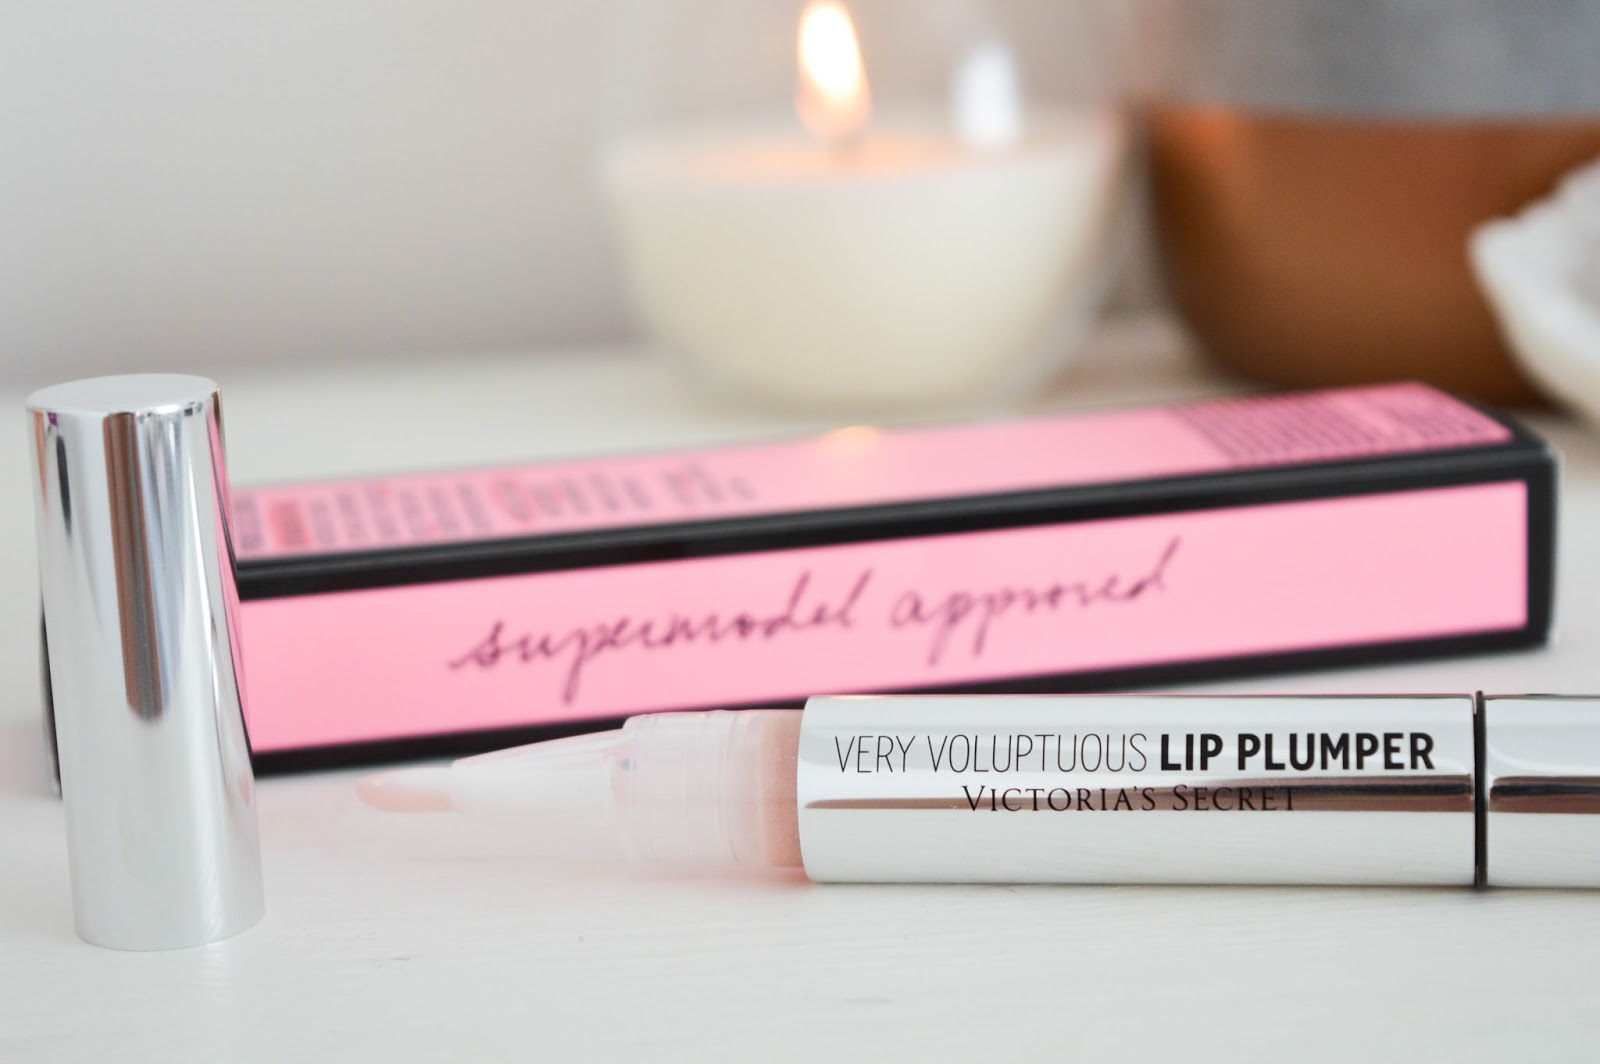 body confidence tips, beauty blog UK, Victorias Secret Very Voluptuous Lip Plumper